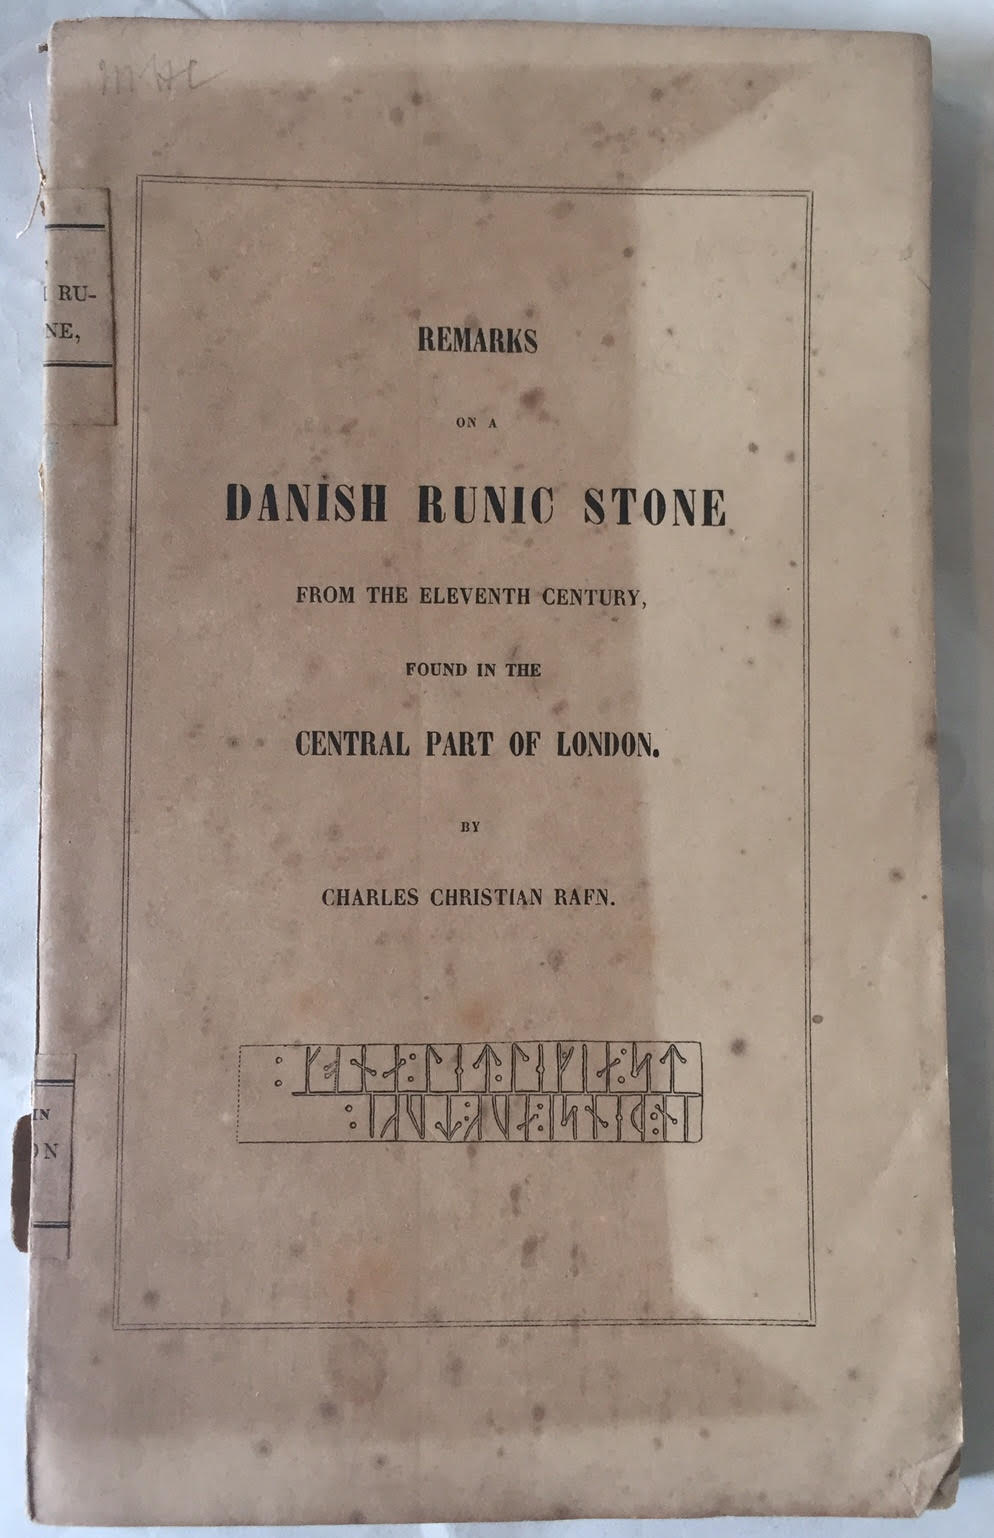 Image for Remarks on a Danish Runic Stone from the Eleventh Century Found in the Central Part of London